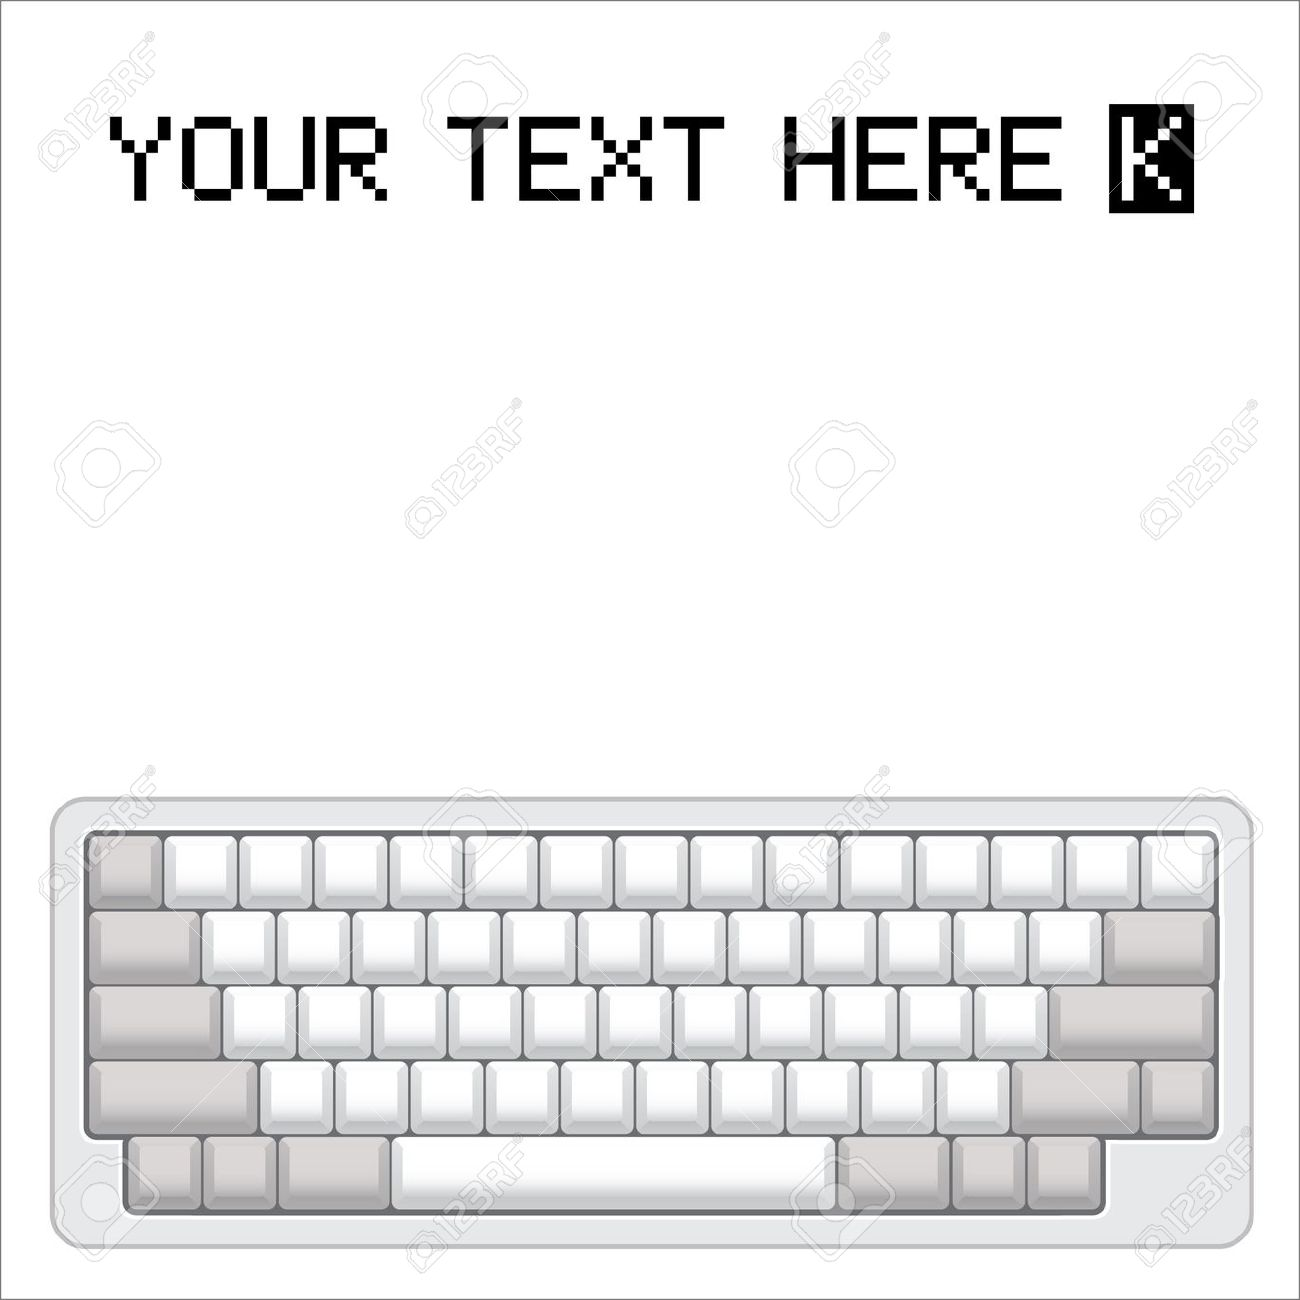 Blank computer keyboard clipart. Layout realistic illustration royalty